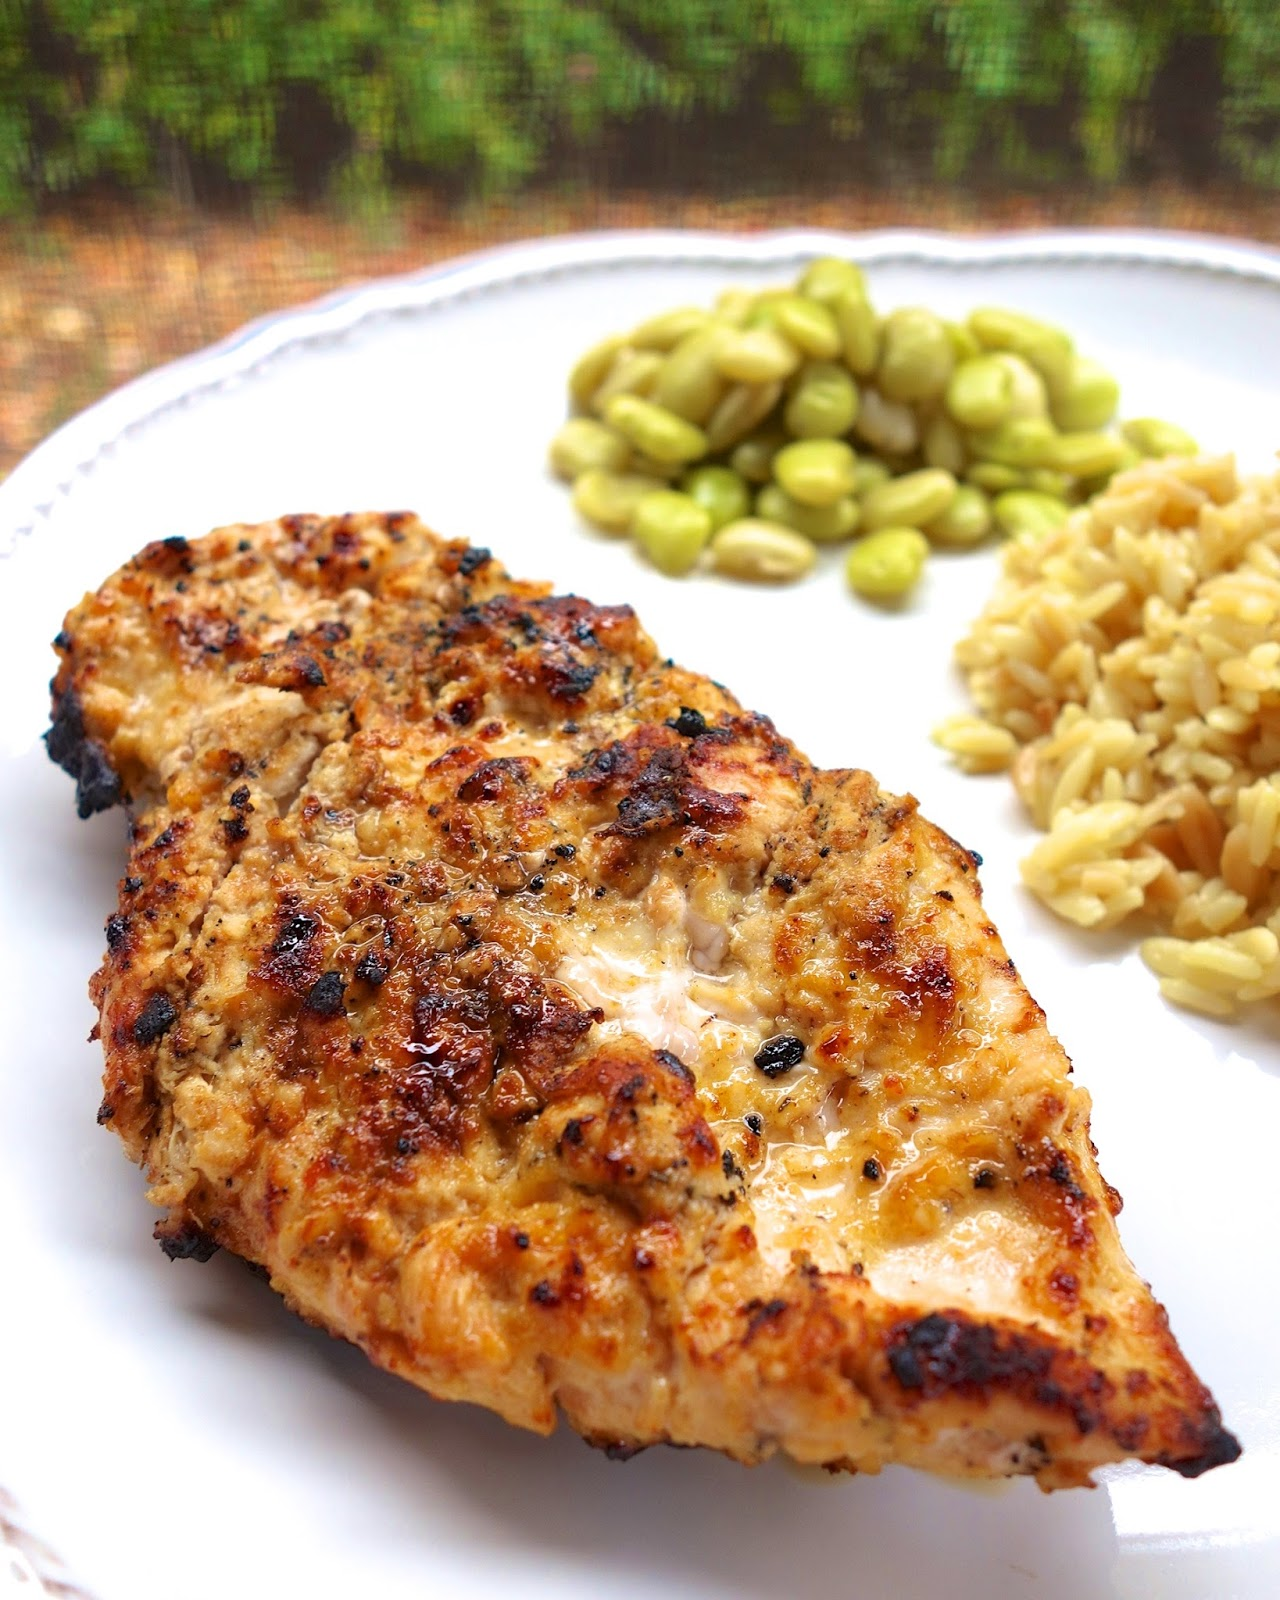 Lemon Garlic Marinade Our Favorite So Simple And Sooo Delicious Chicken Marinated In